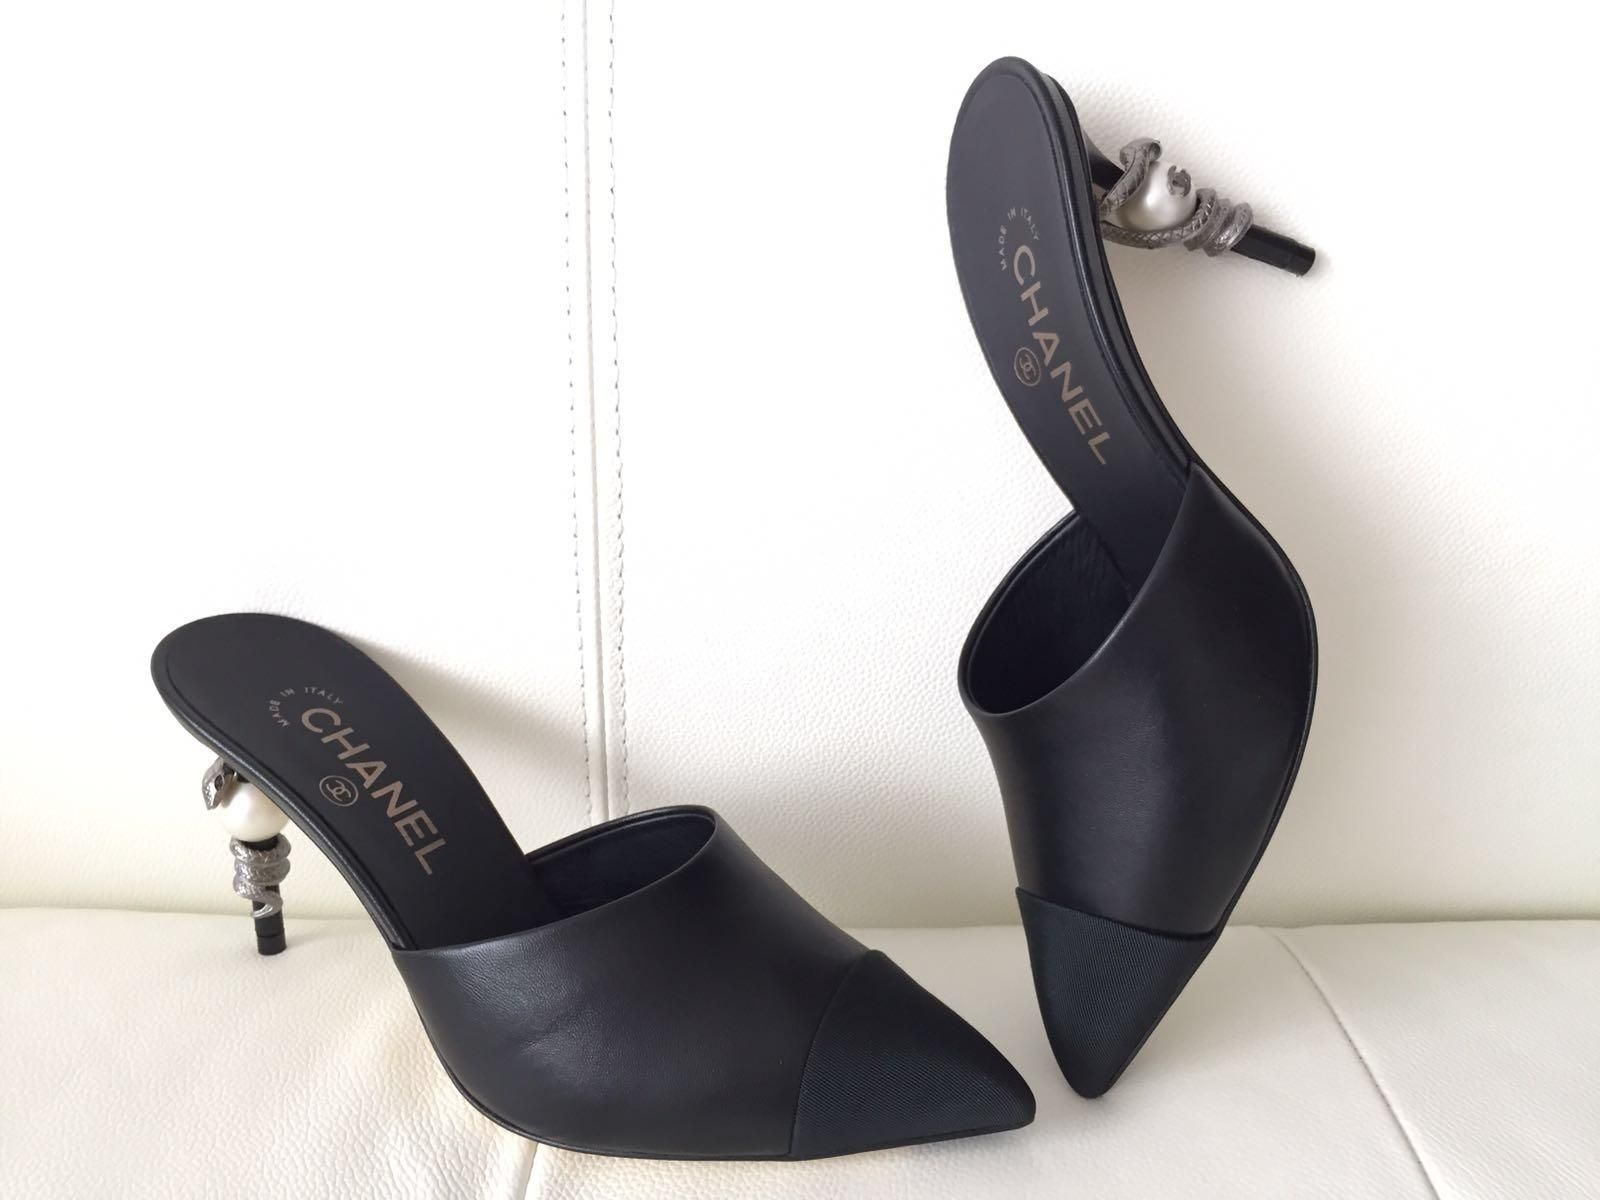 e4192c7f42 Chanel Runway Leather Mules Heels Pearl Snake 38.5 Black Pumps. Get the  must-have